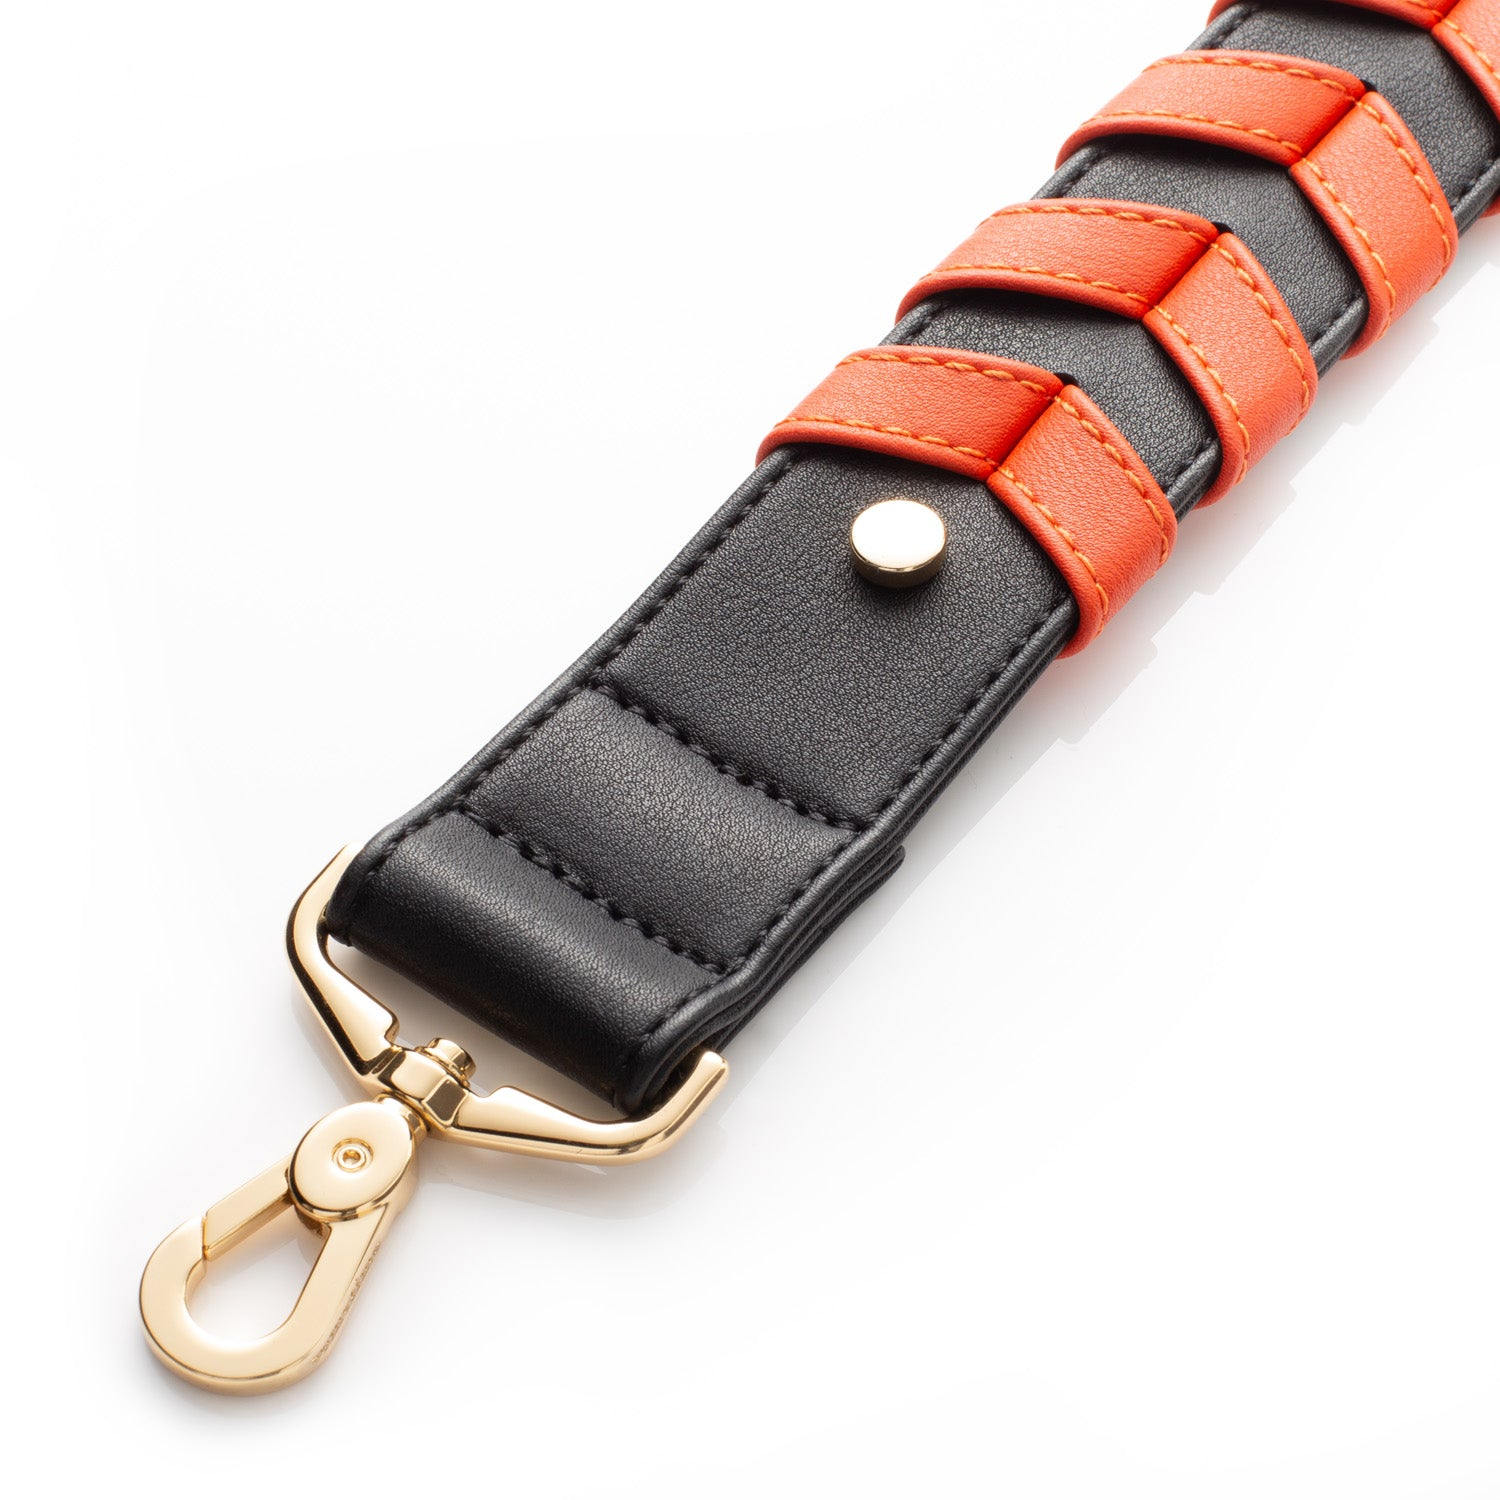 BRAIDED STRAP - ORANGE